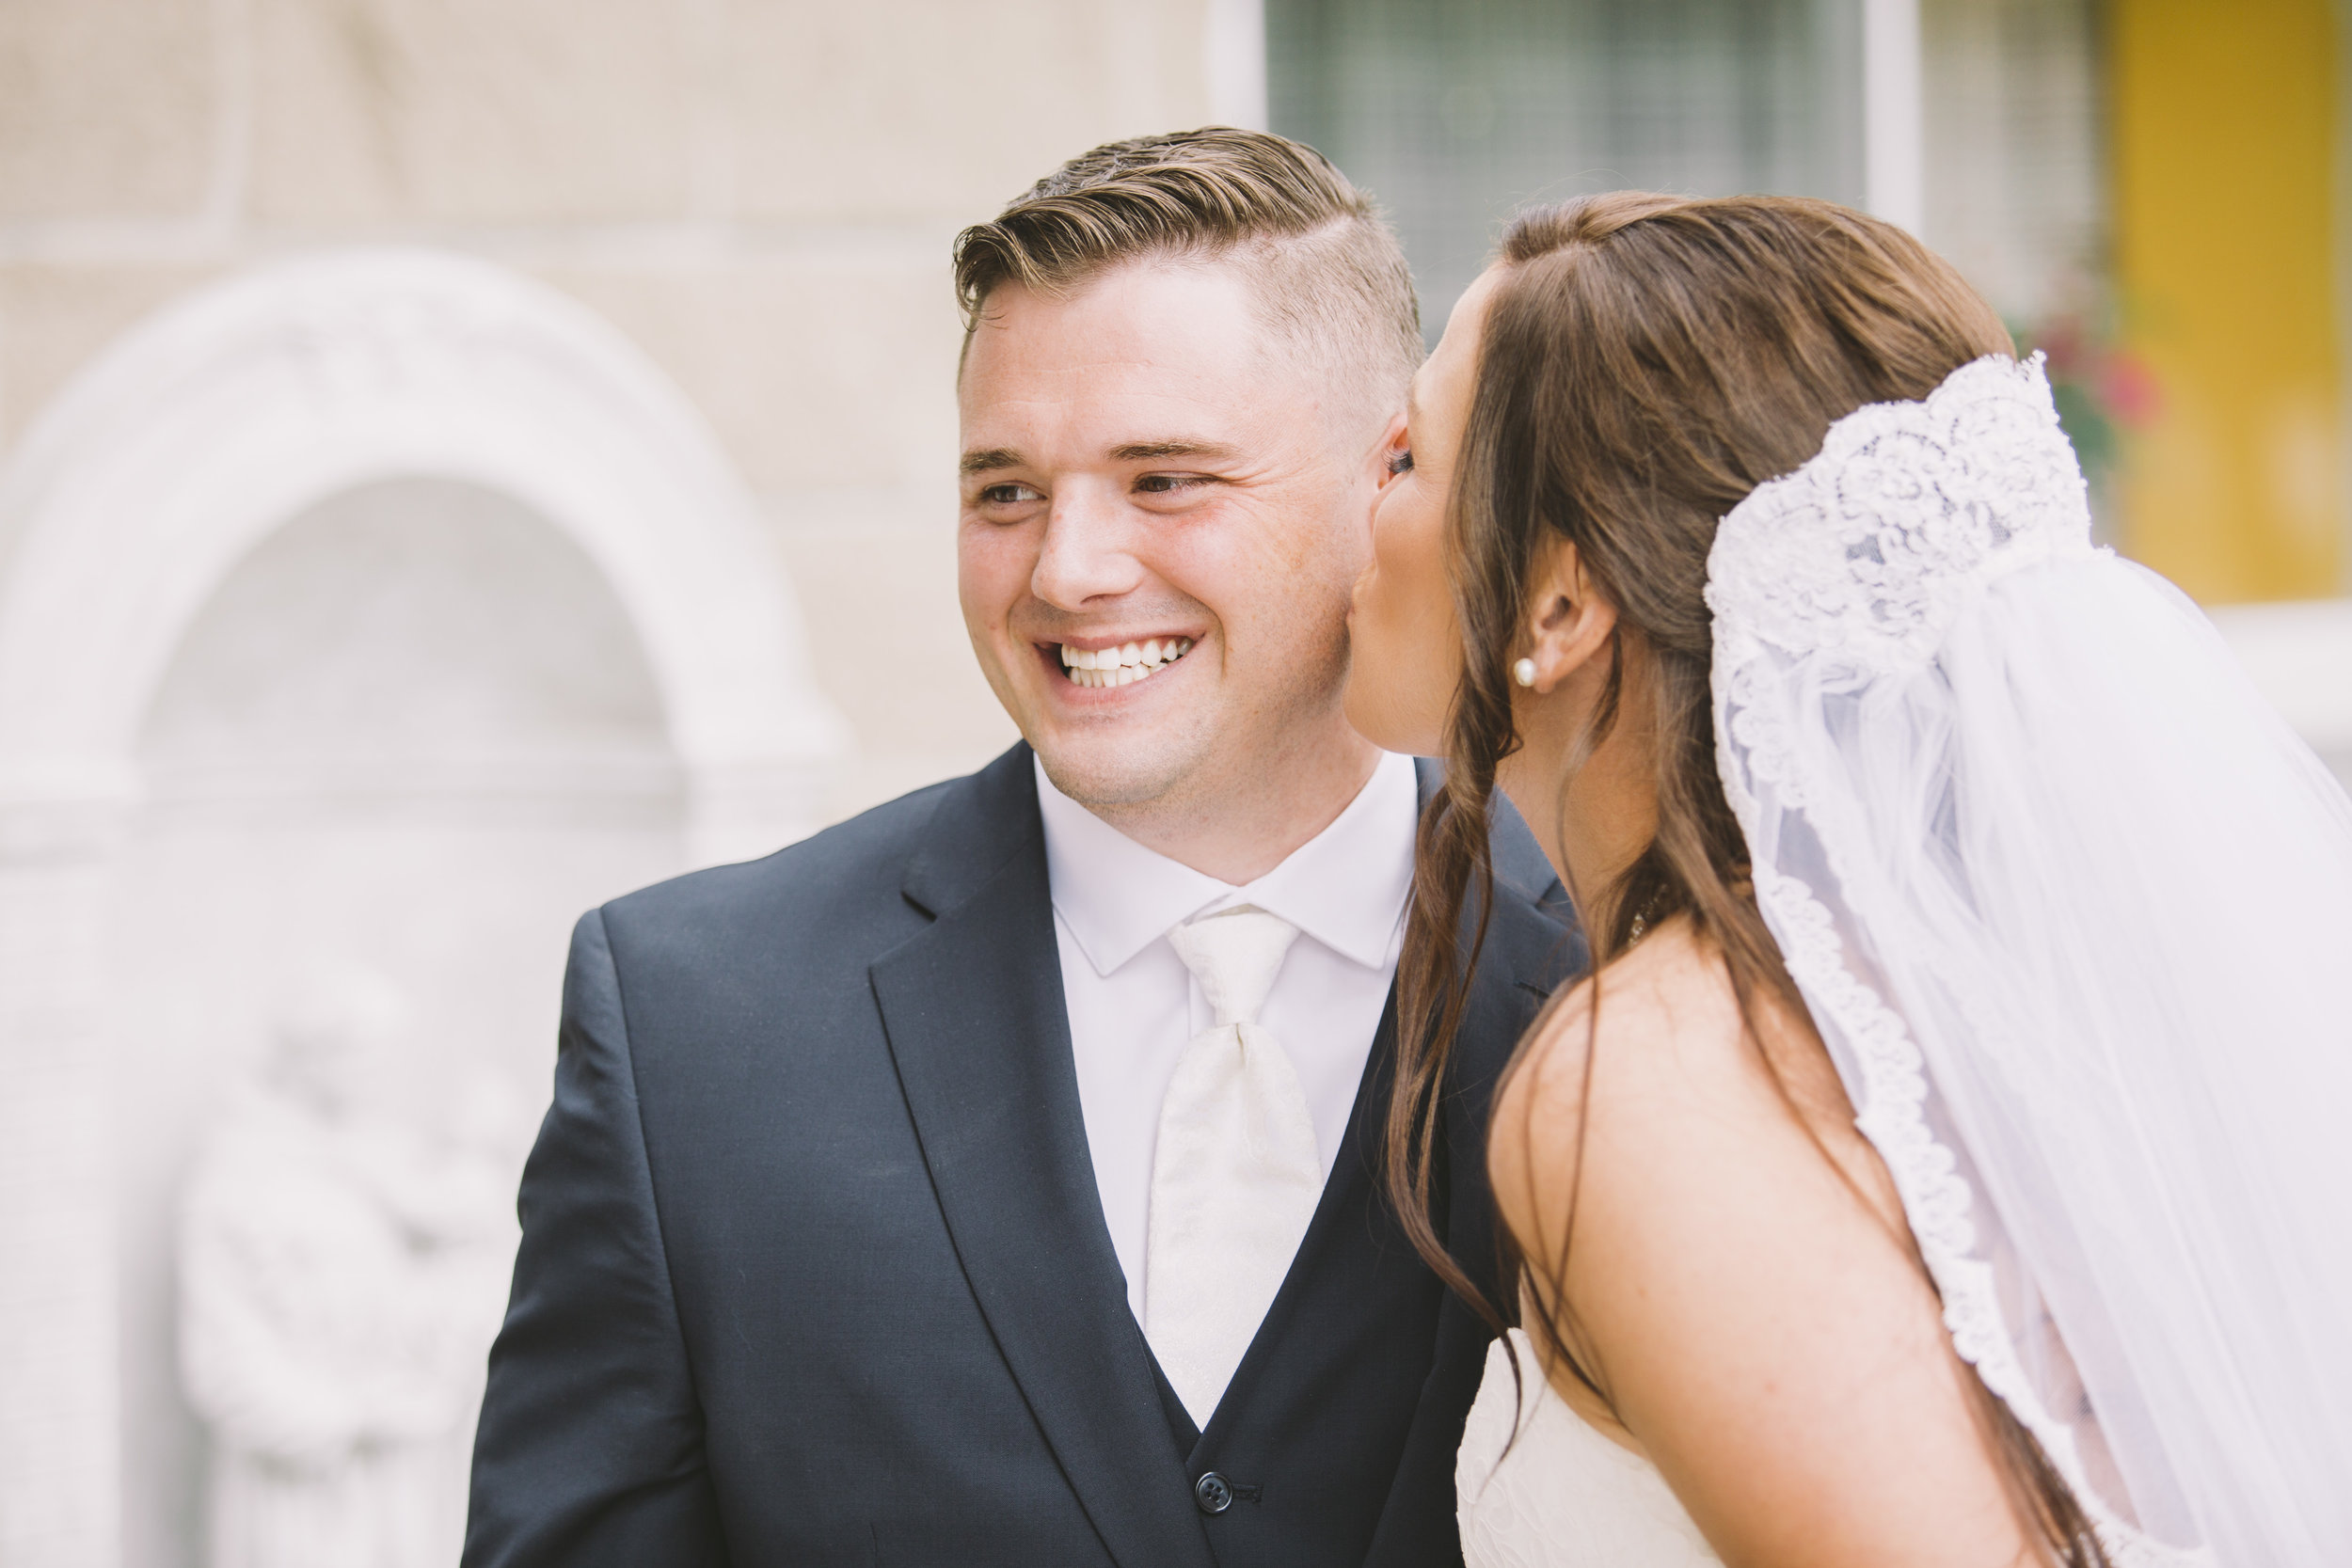 Groom and bride kissing after the ceremony